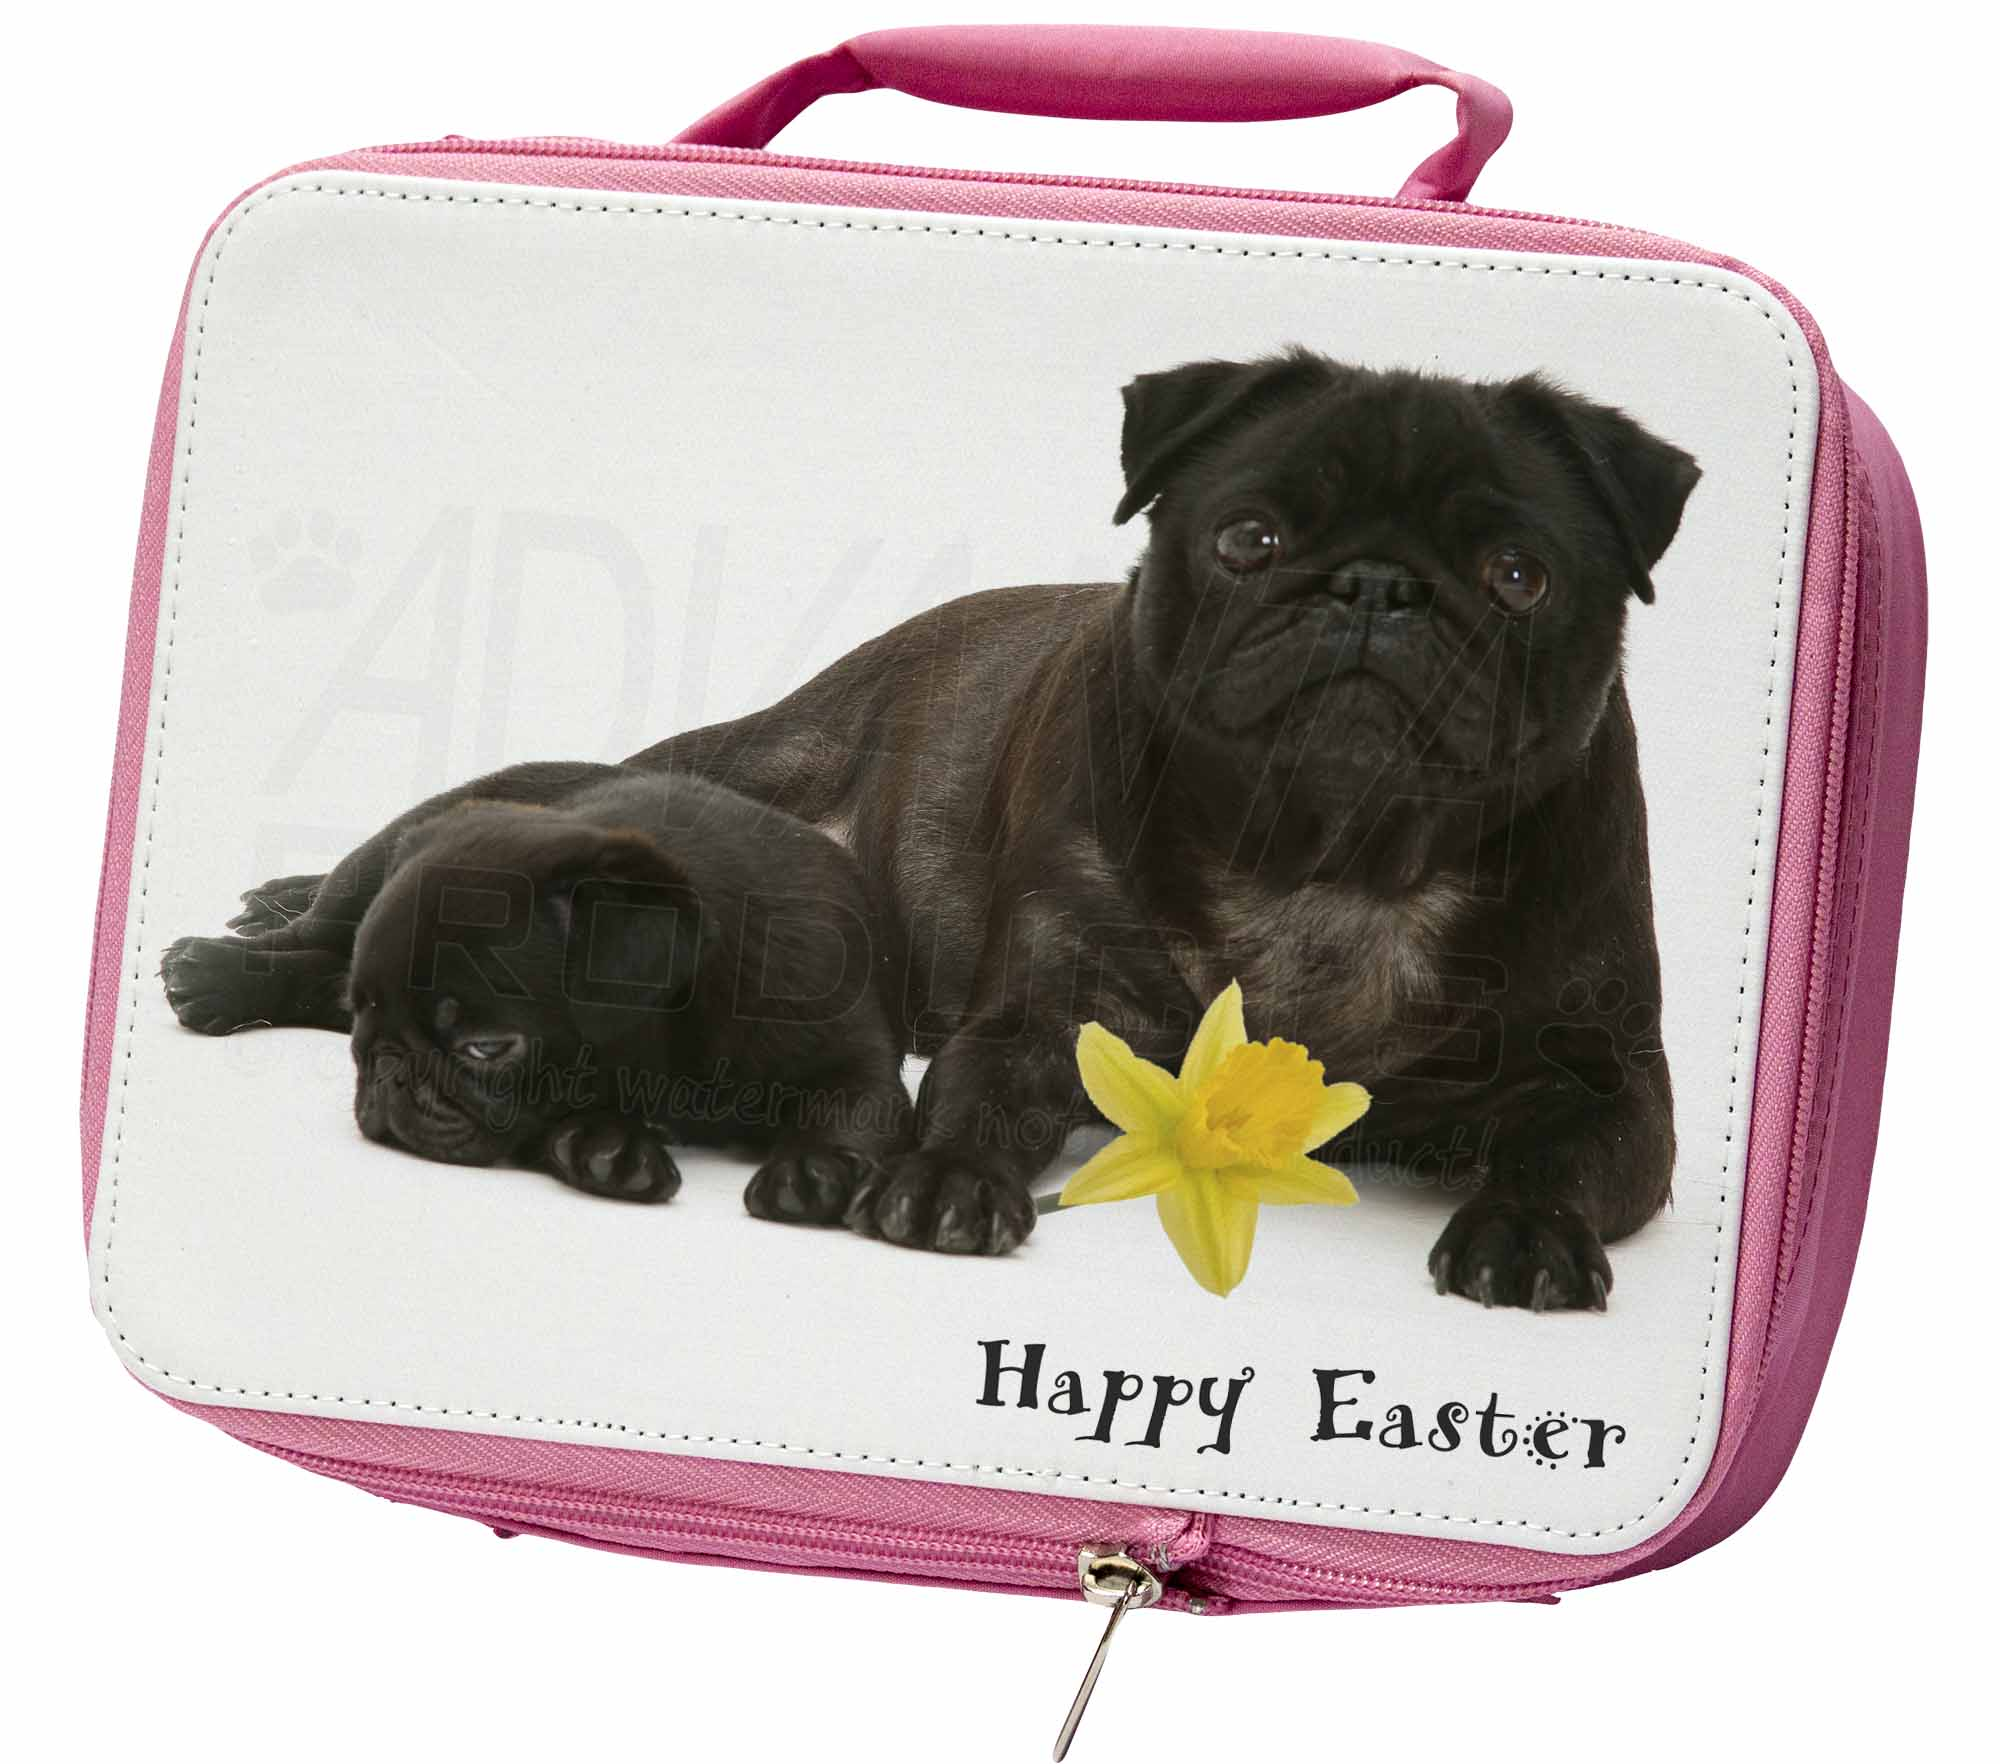 'Happy Easter' Black Pug Dogs Insulated Pink Lunch Box, AD-P91DA1LBP